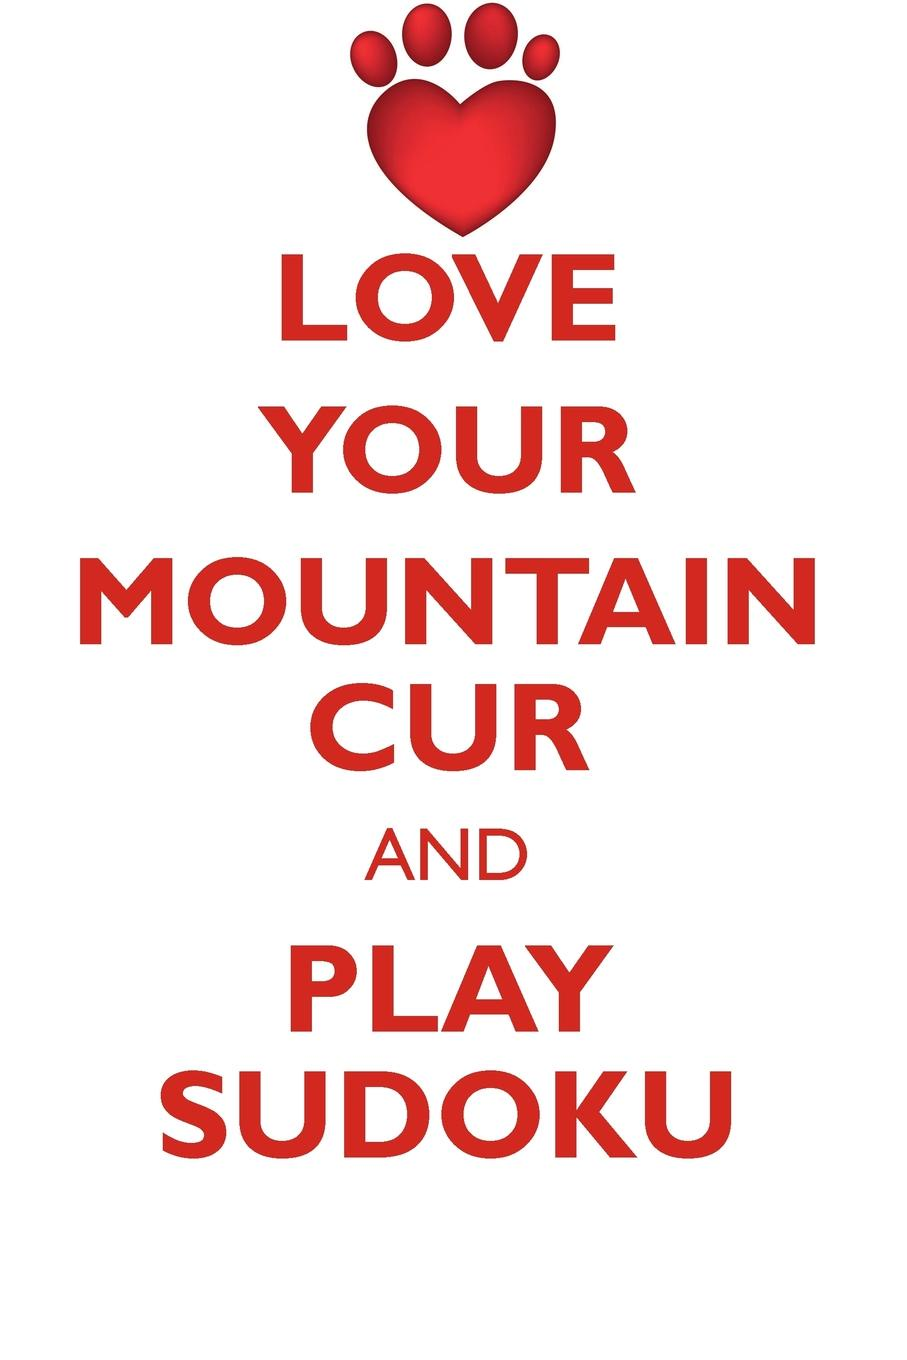 Loving Puzzles LOVE YOUR MOUNTAIN CUR AND PLAY SUDOKU MOUNTAIN CUR SUDOKU LEVEL 1 of 15